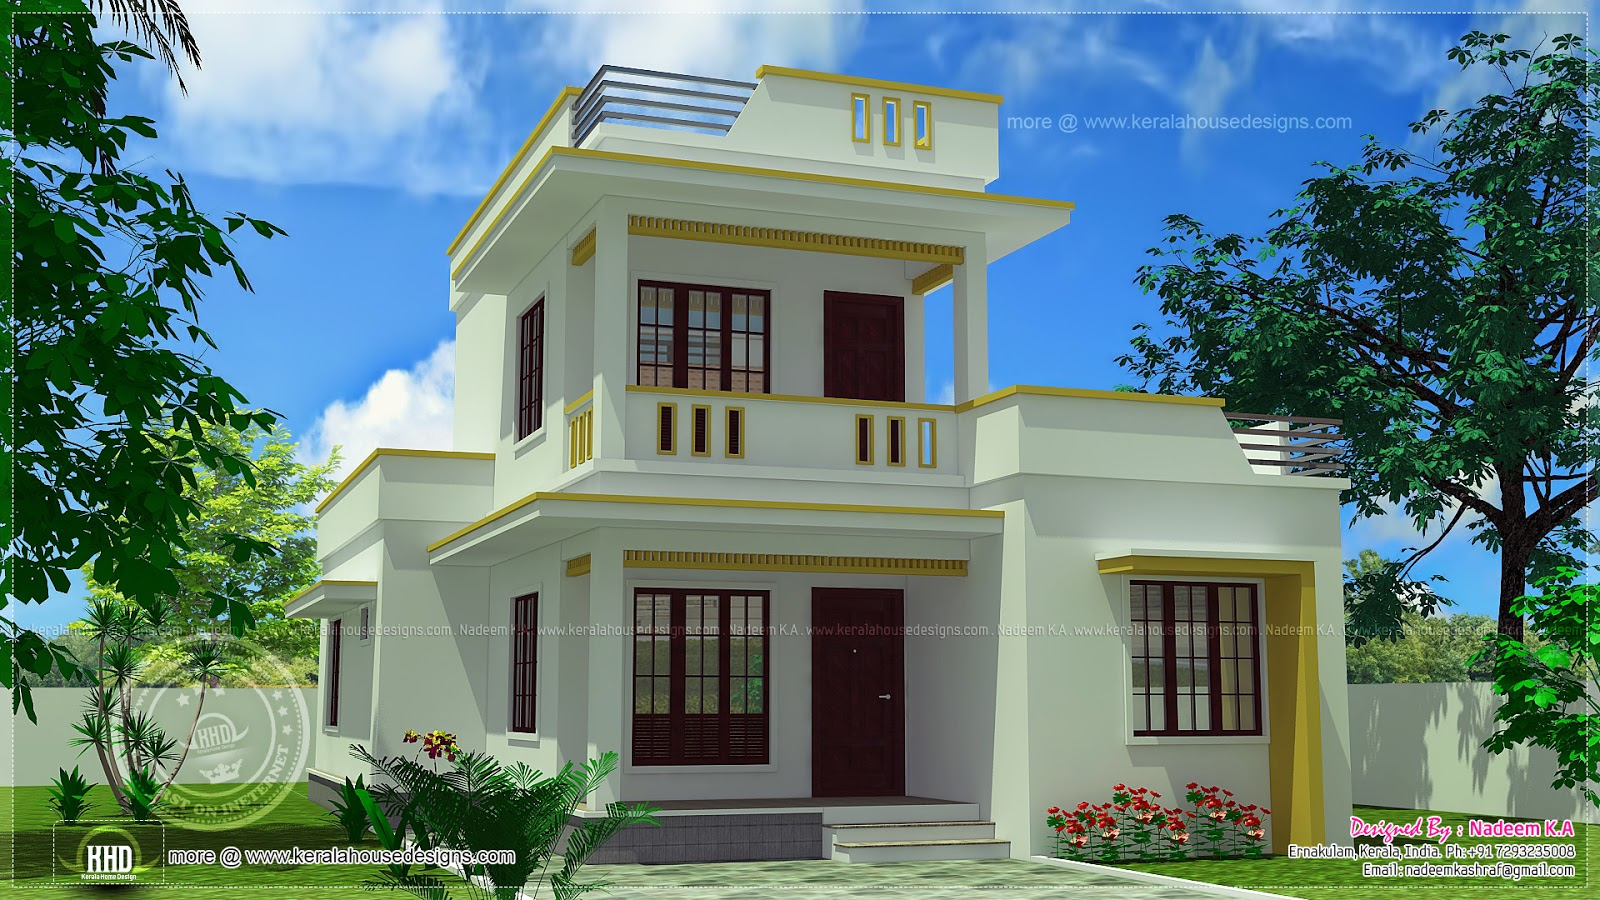 August 2013 kerala home design and floor plans - Design house ...